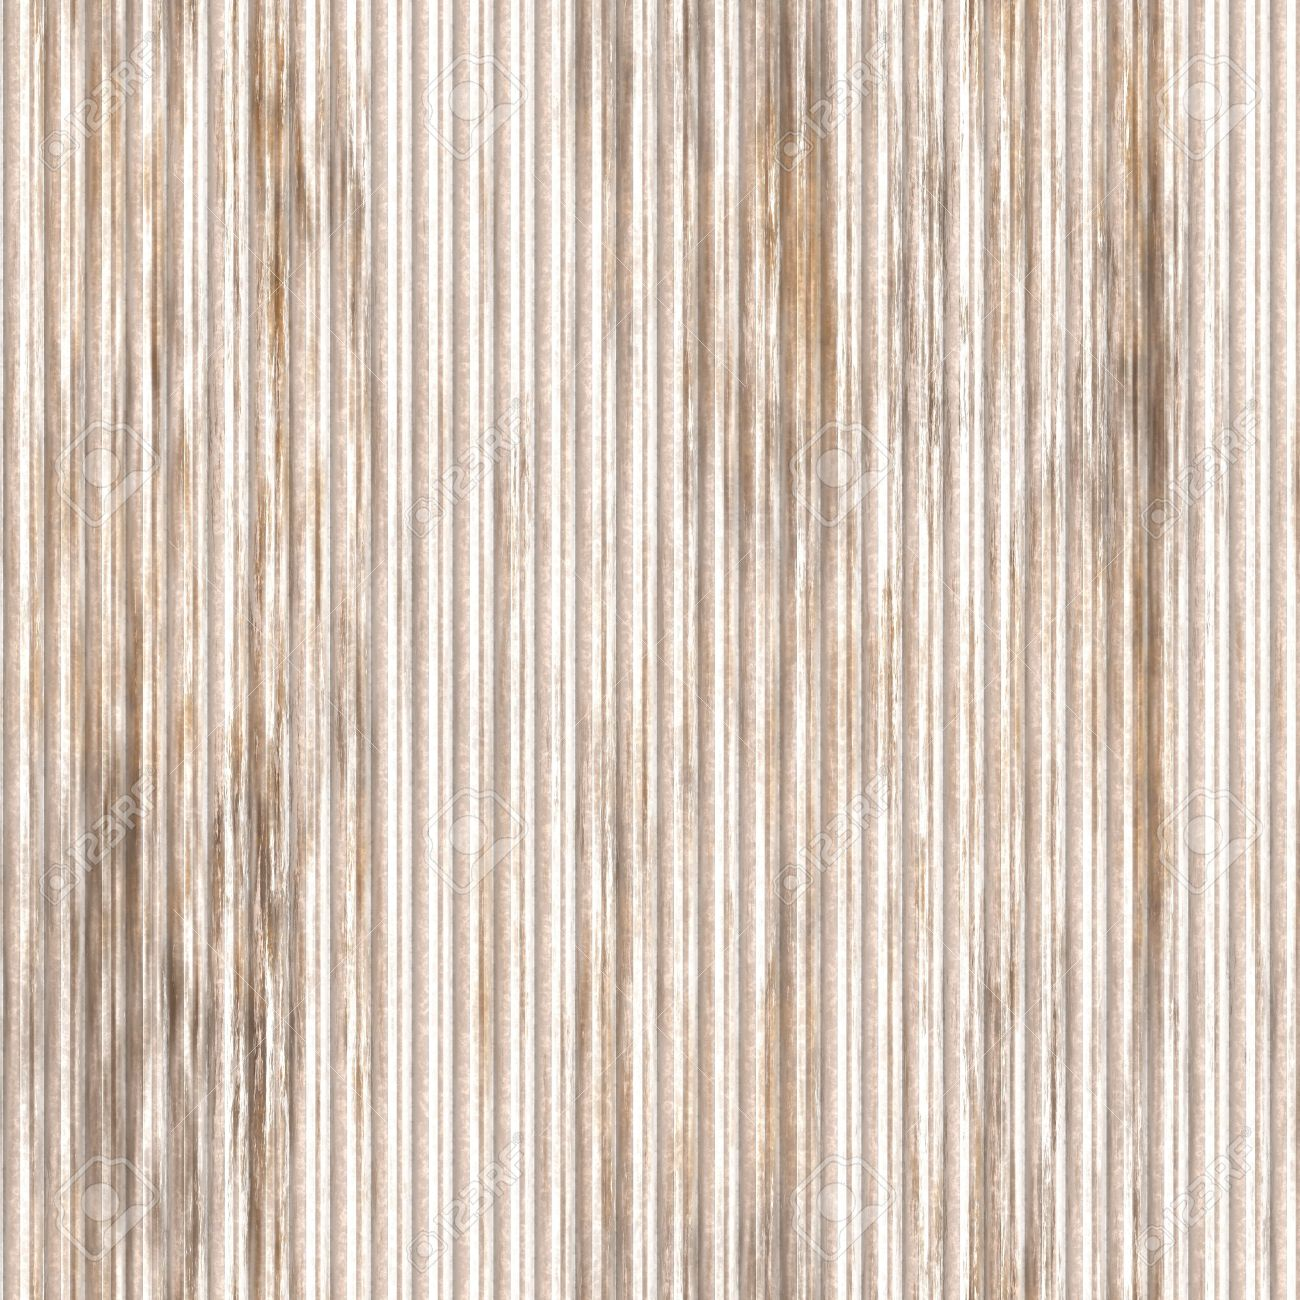 Corrugated metal ridged surface with corrosion seamless texture Stock Photo  6706234  Corrugated Metal Ridged Surface. Corrugated Metal Seamless Texture